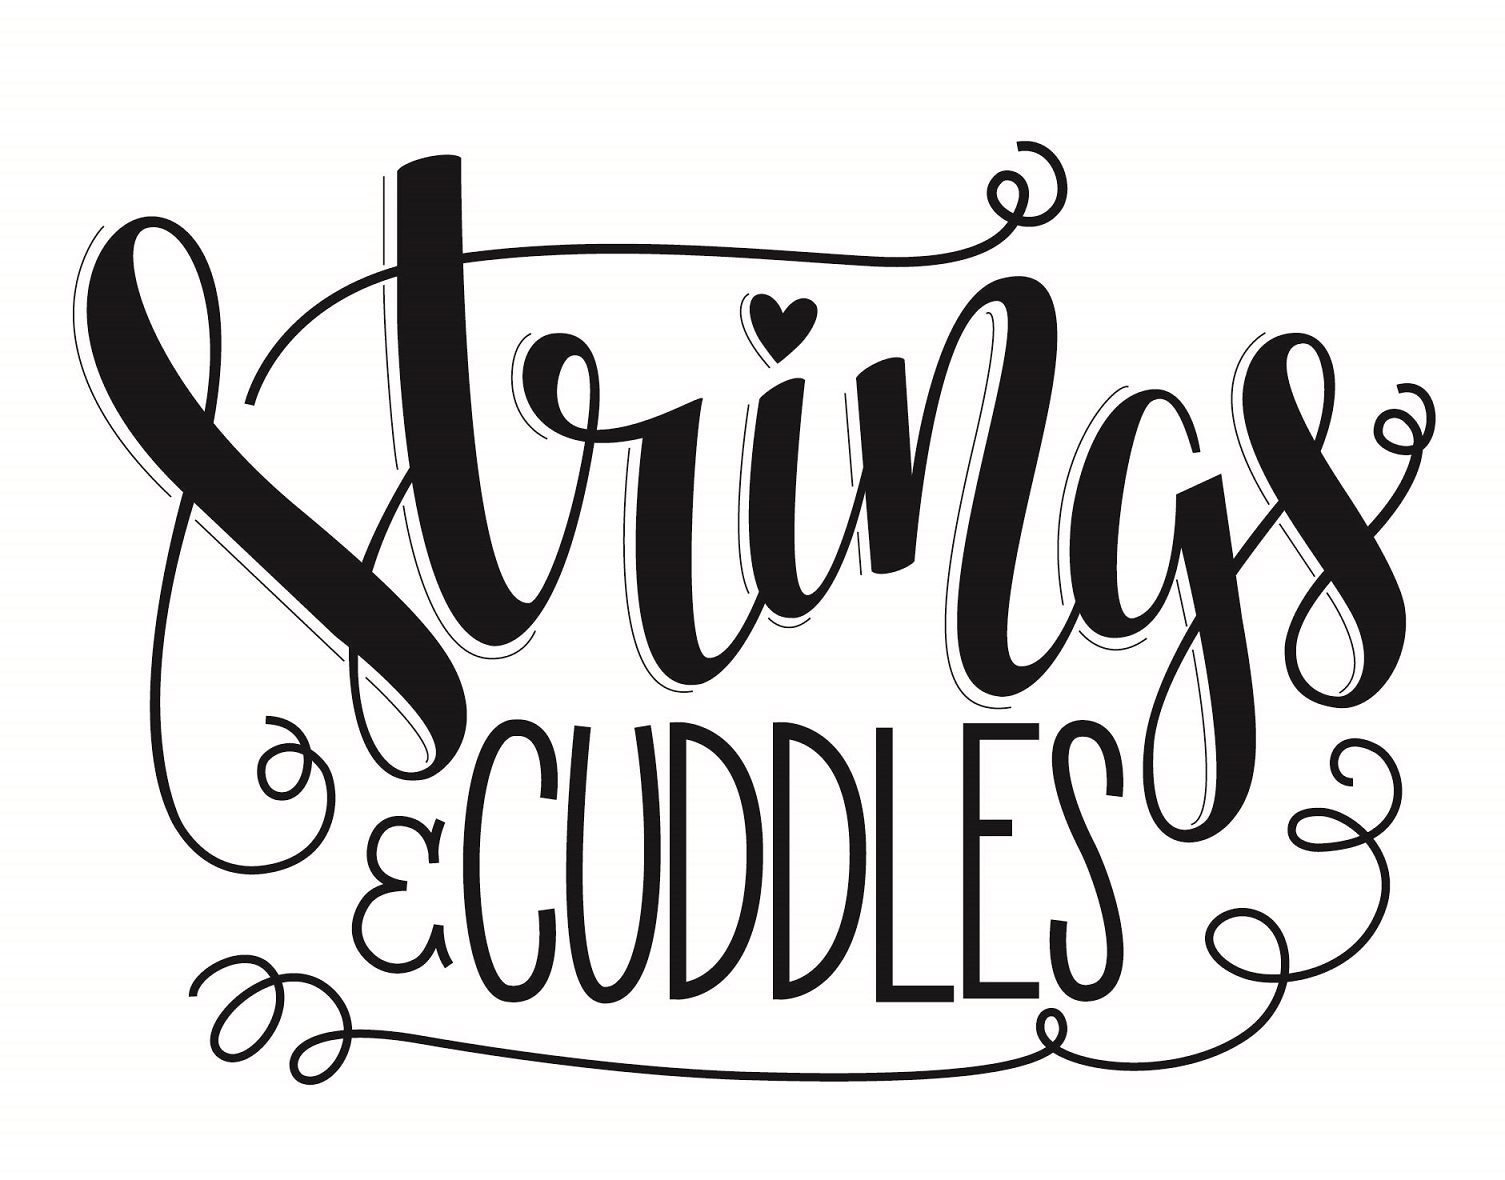 STRINGS AND CUDDLES